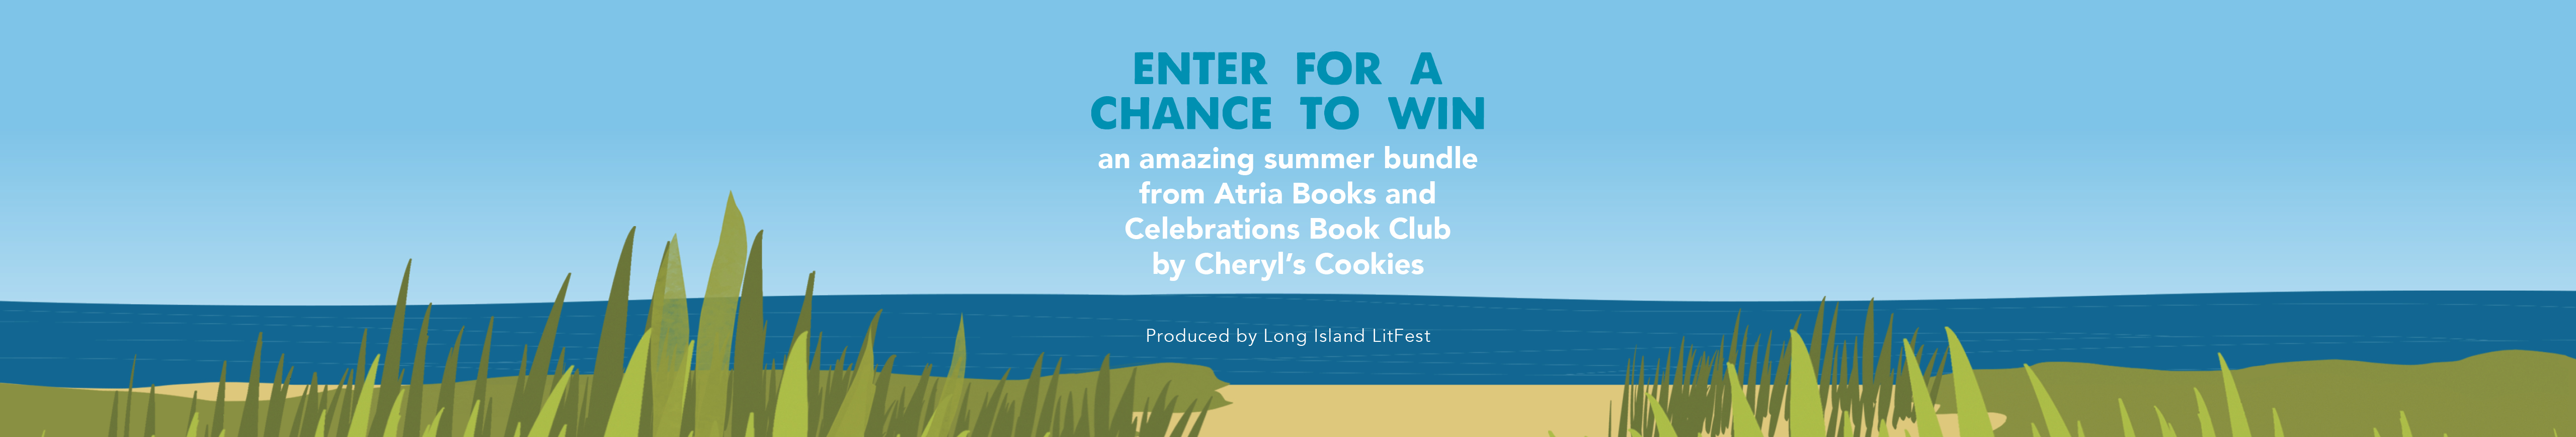 enter to win That Summer sweeps